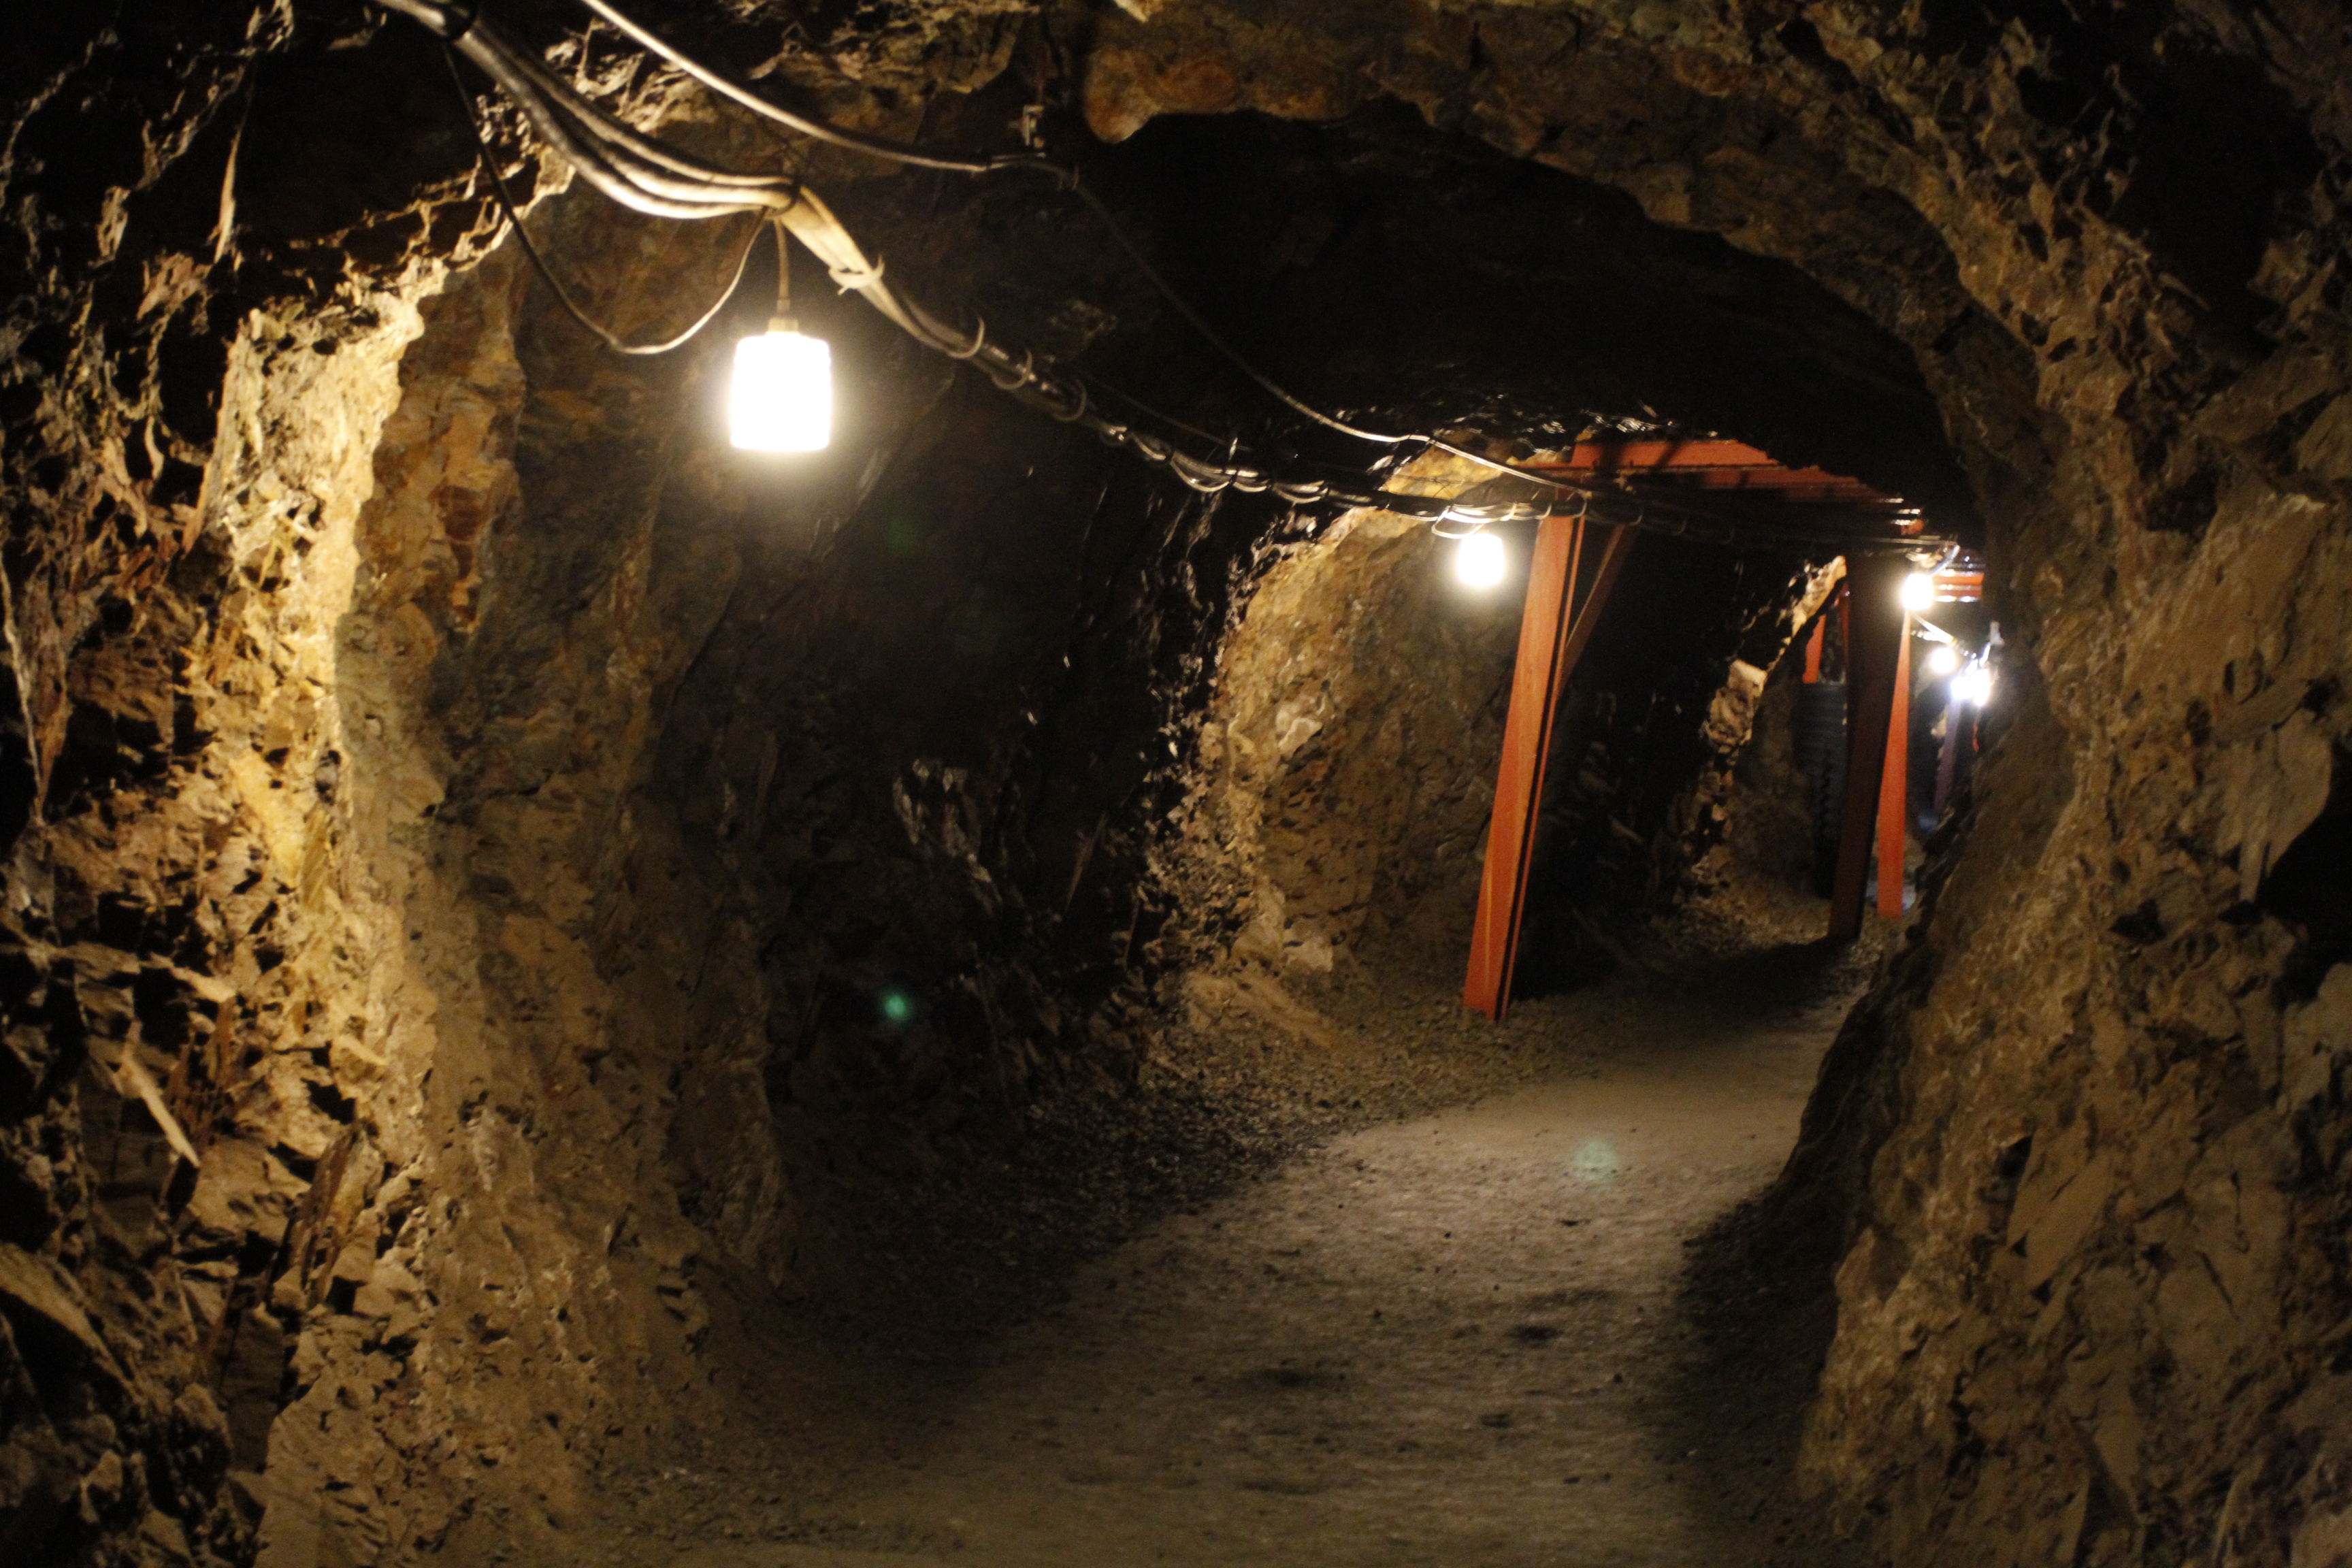 Matsushiro Zouzan Underground Shelter, photo by By baku13 via Wikimedia Commons